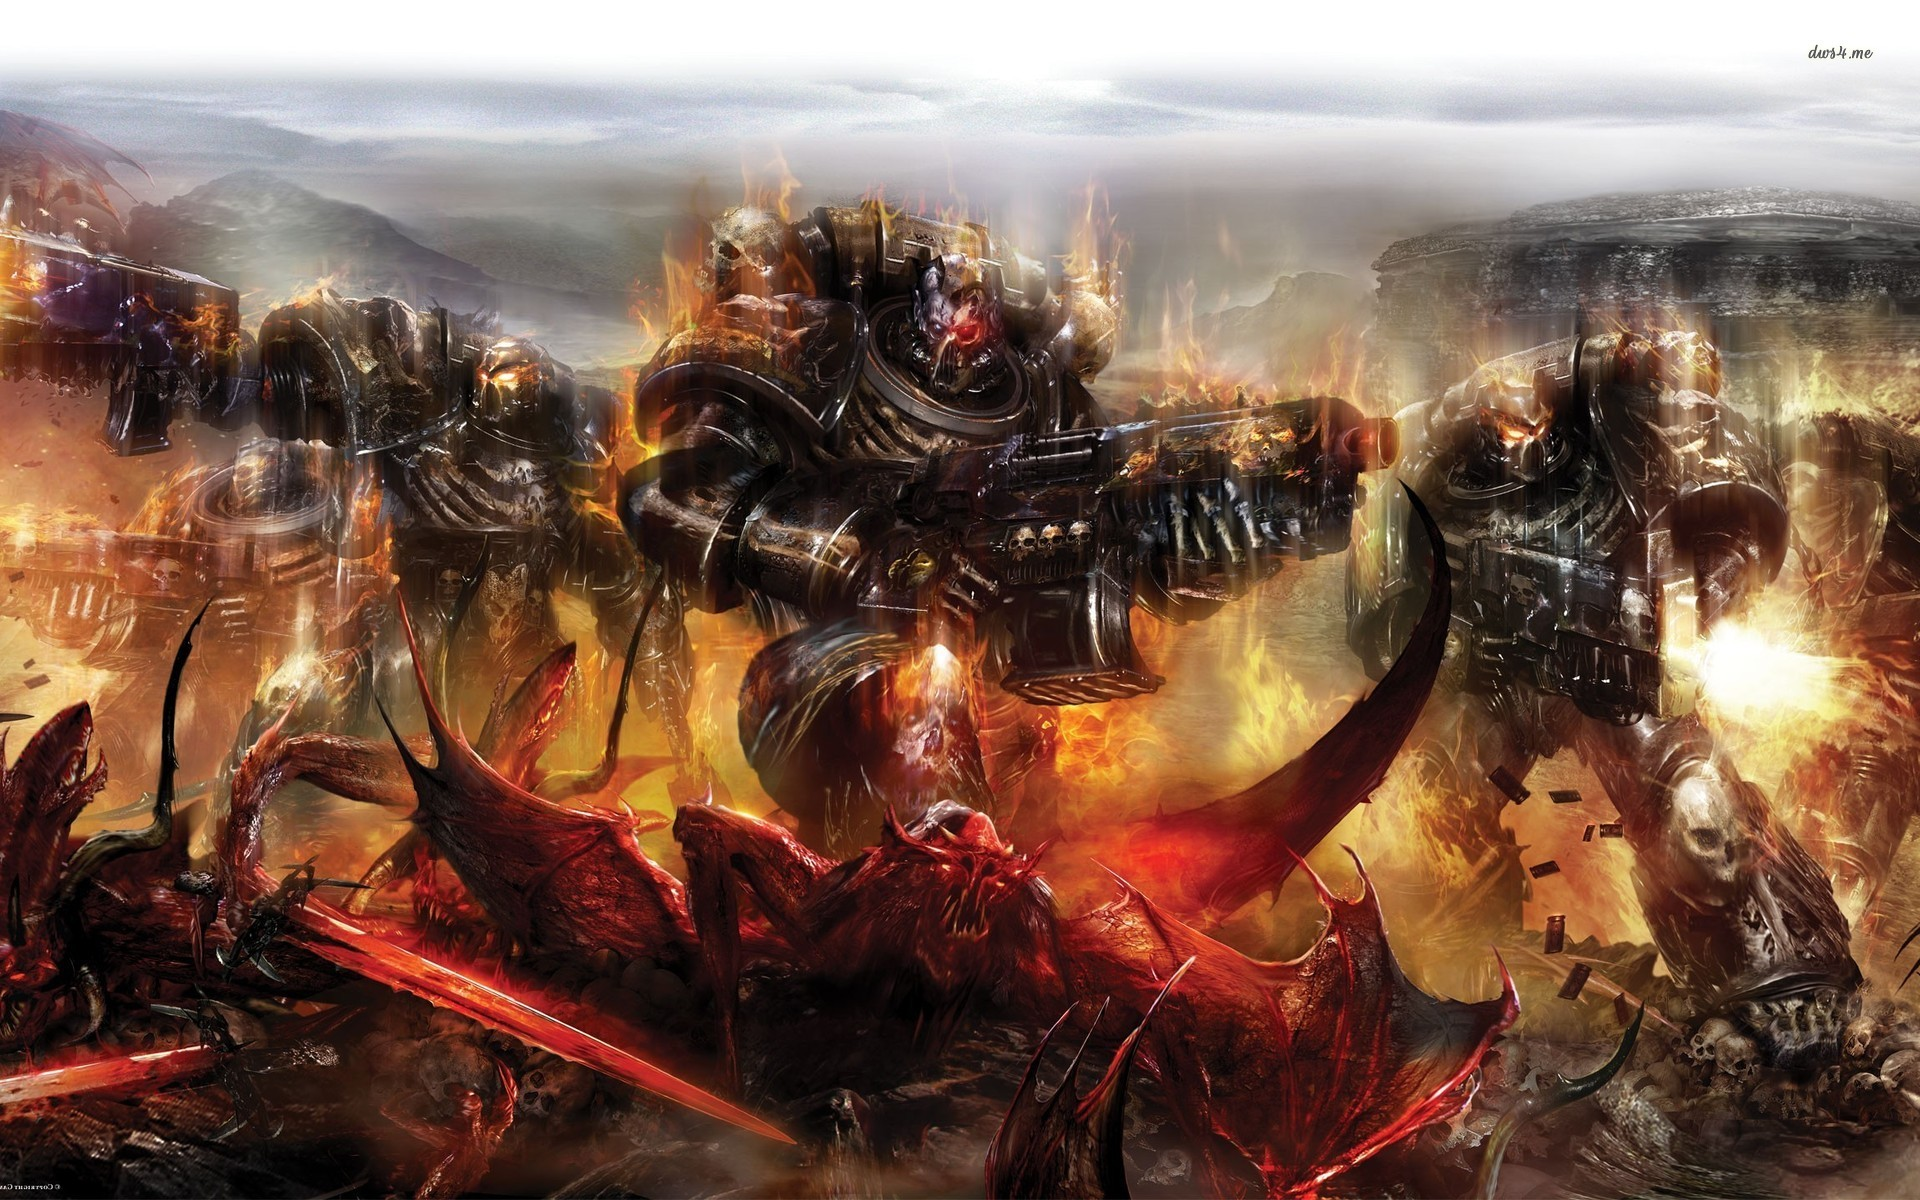 Res: 1920x1200, Warhammer Space Marine Wallpaper HD Resolution - Wickedsa.com src